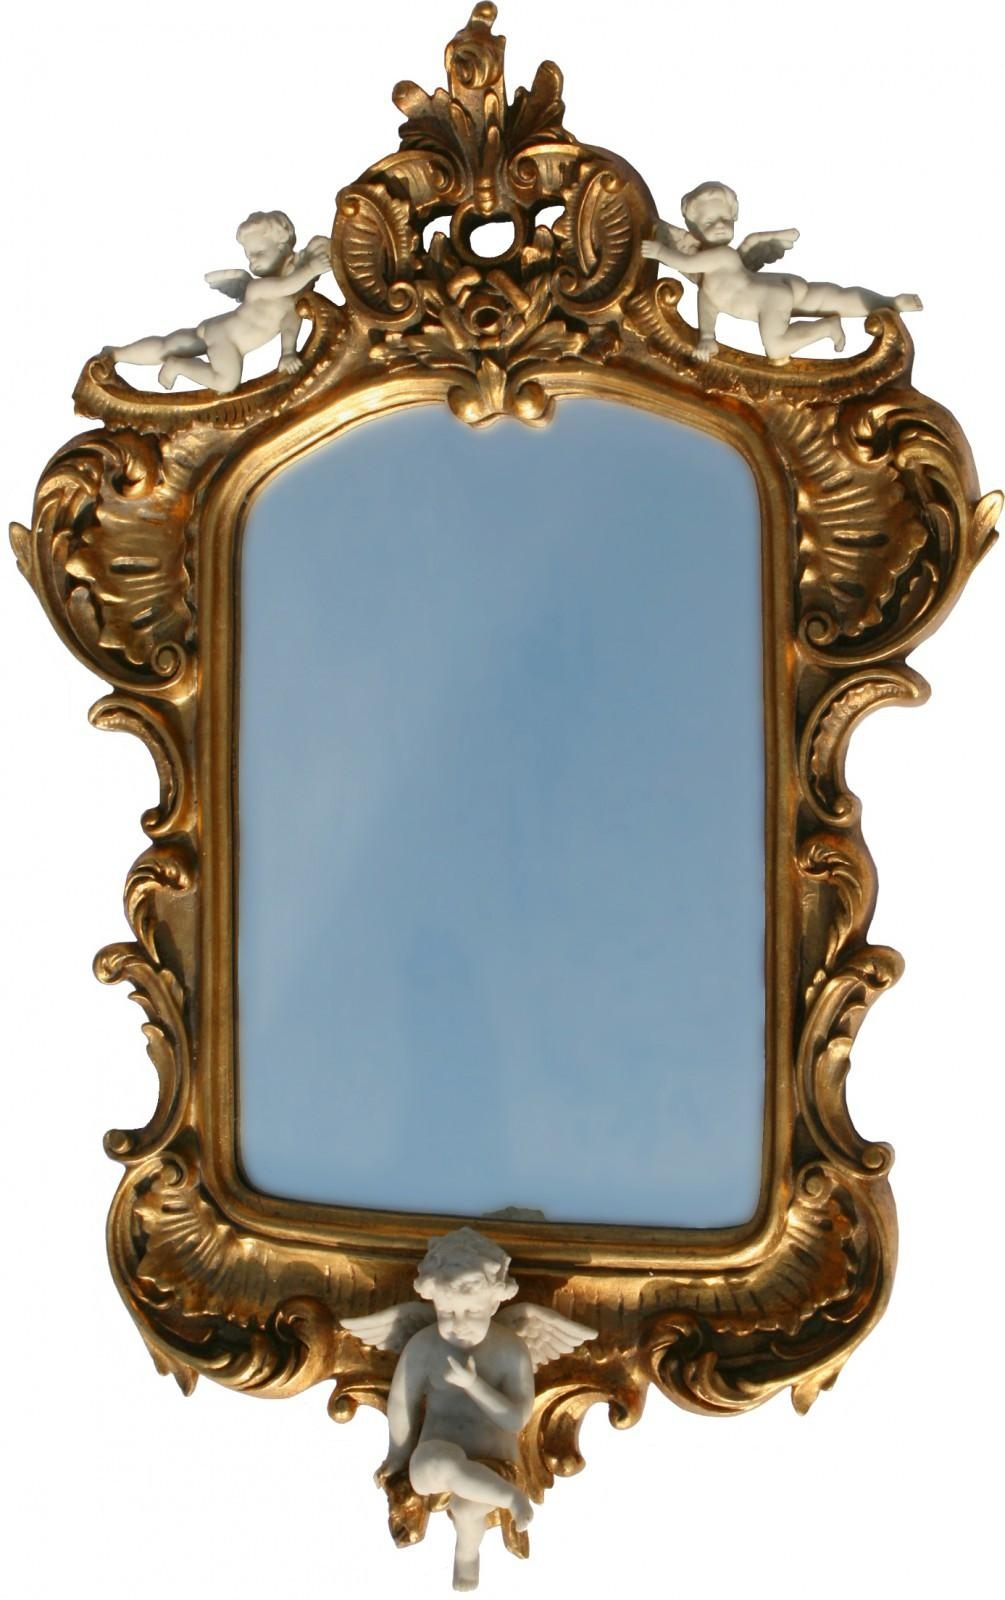 Angel Motif Baroque Mirror In Gold Wooden Frame With Three White In Baroque Mirror Gold (Photo 7 of 20)